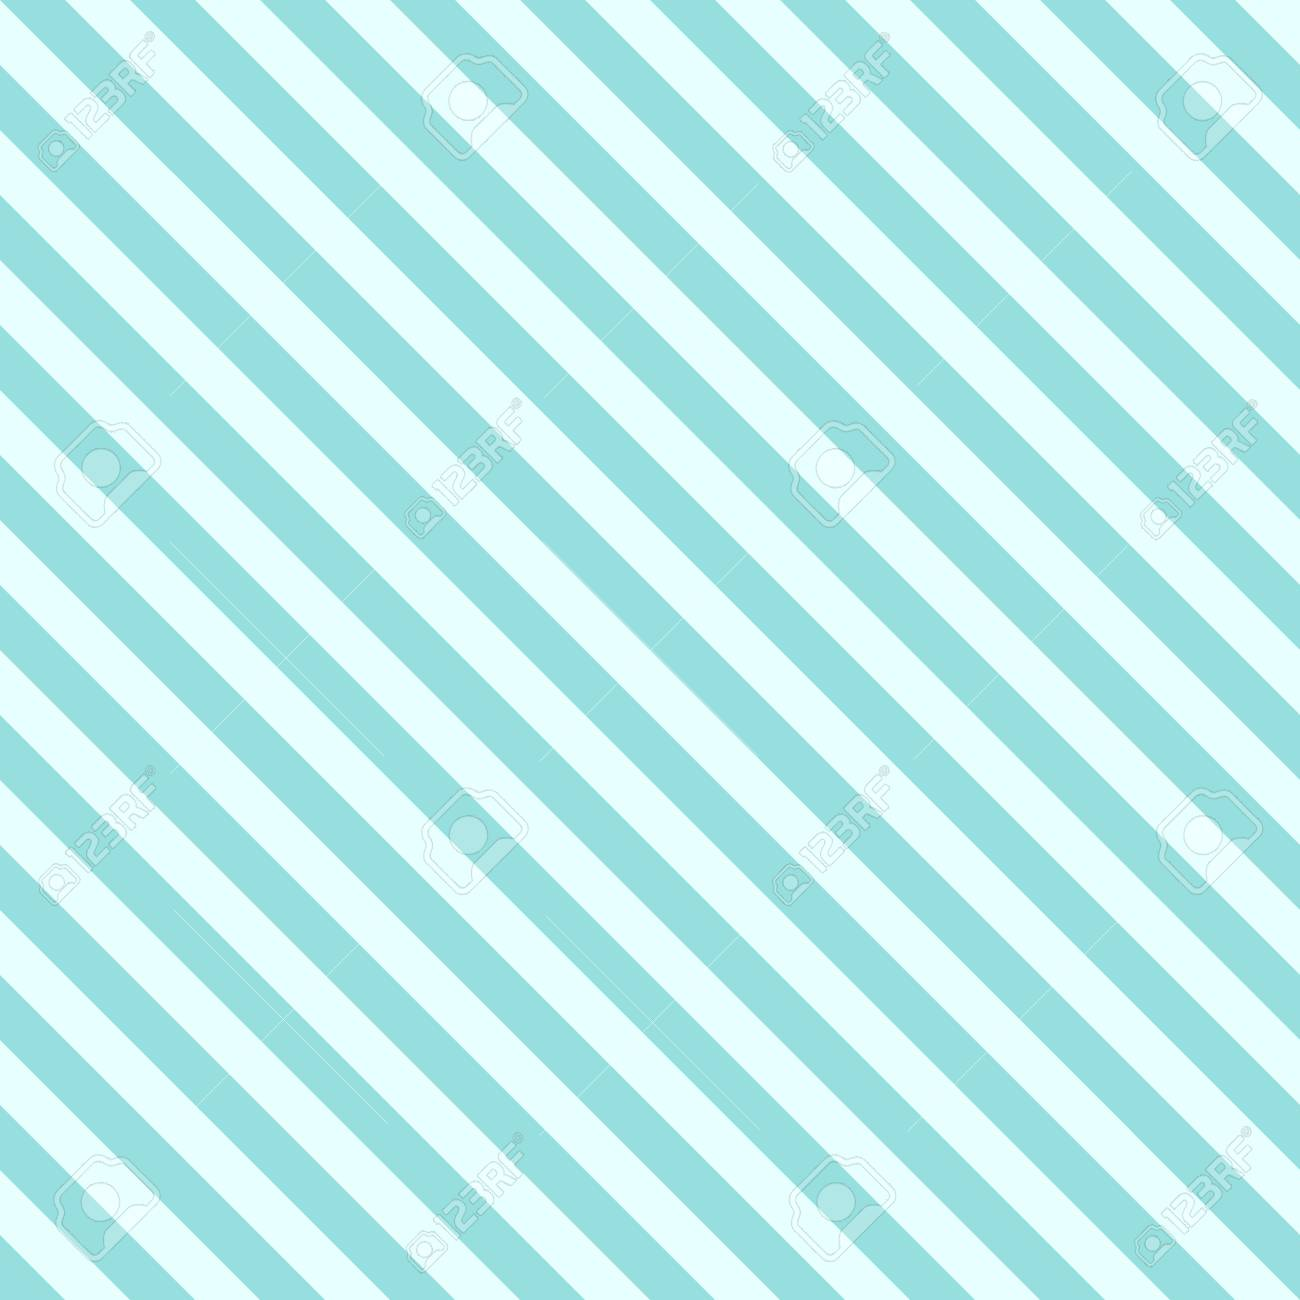 Background Pattern Stripe Seamless Vector Texture Green Aqua Pastel Two Tone Colors Wallpaper Backdrop Diagonal